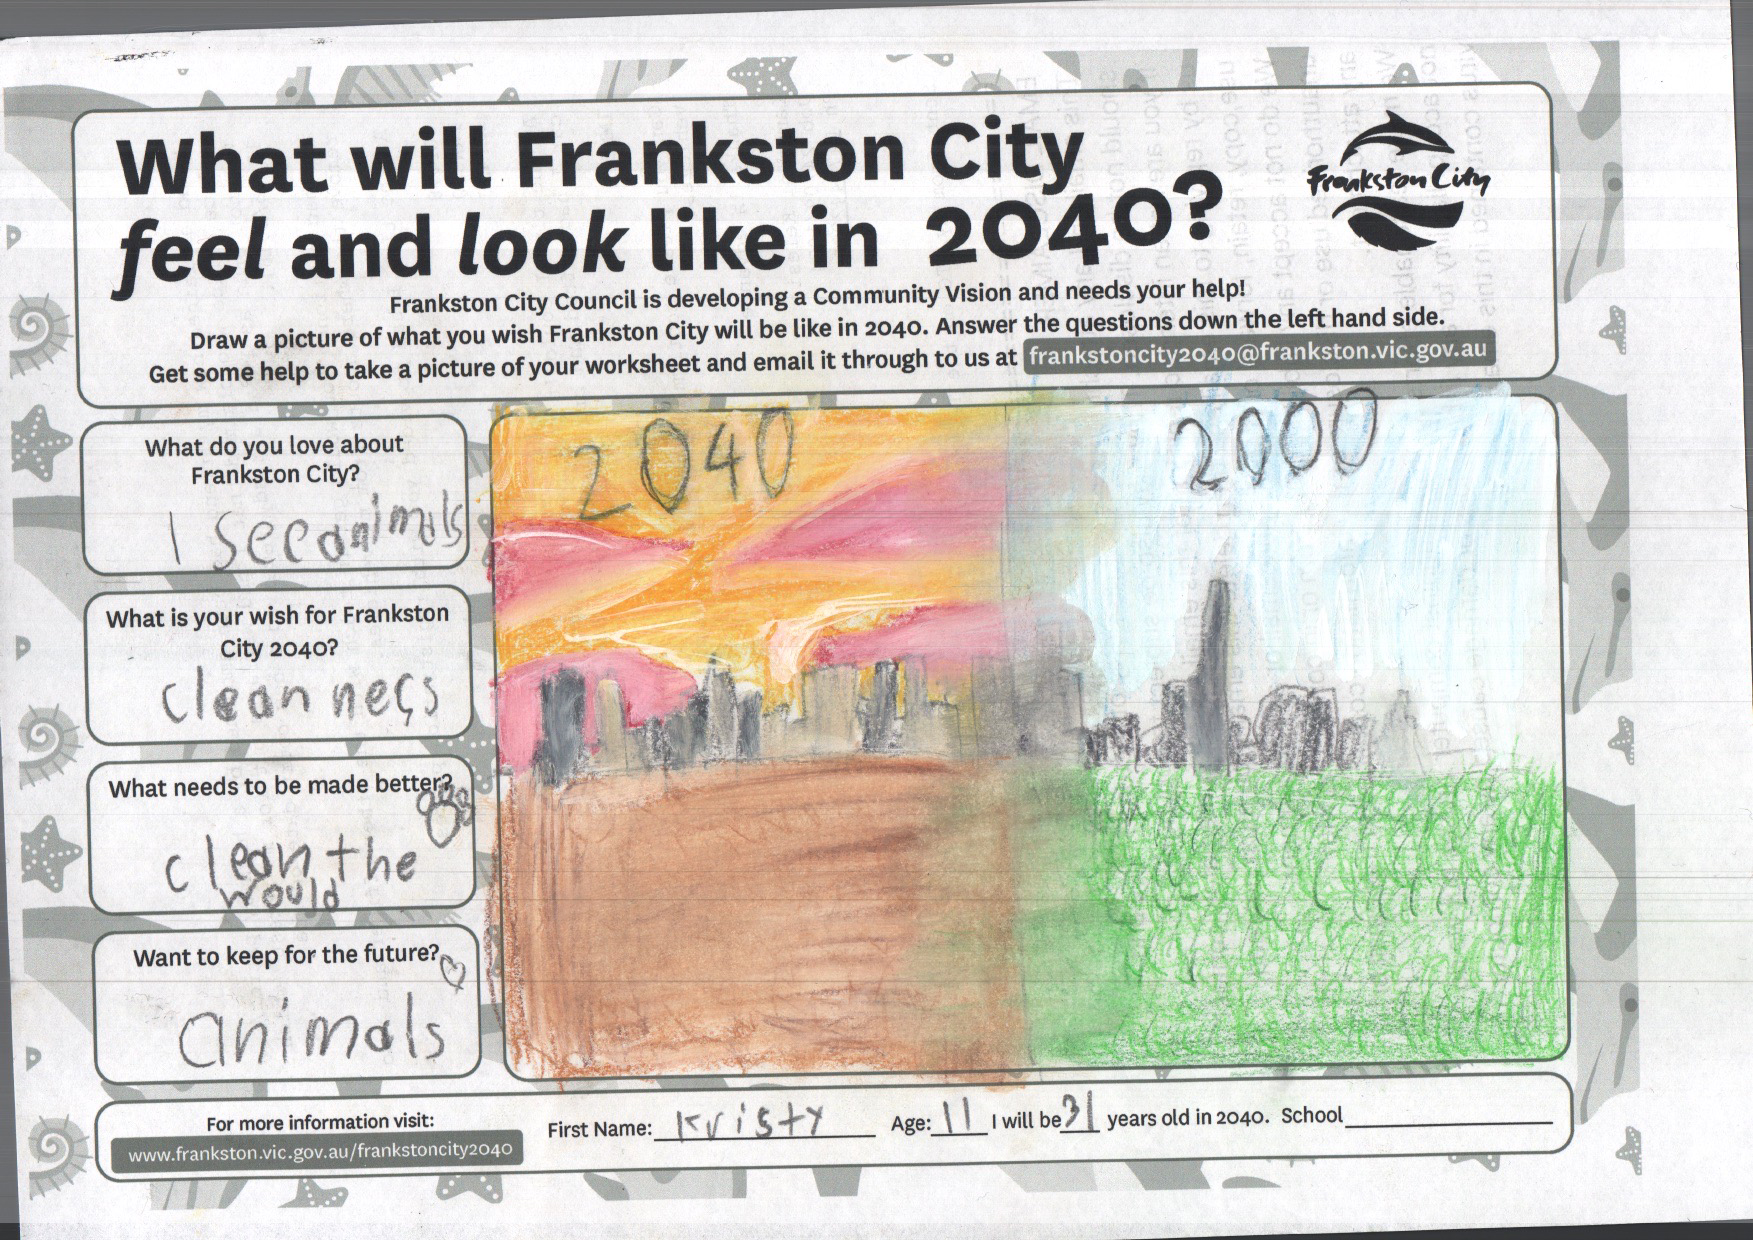 /uploaded_files/media/gallery/1599813960Kristy - What will Frankston look like in 2040 (00000002).png